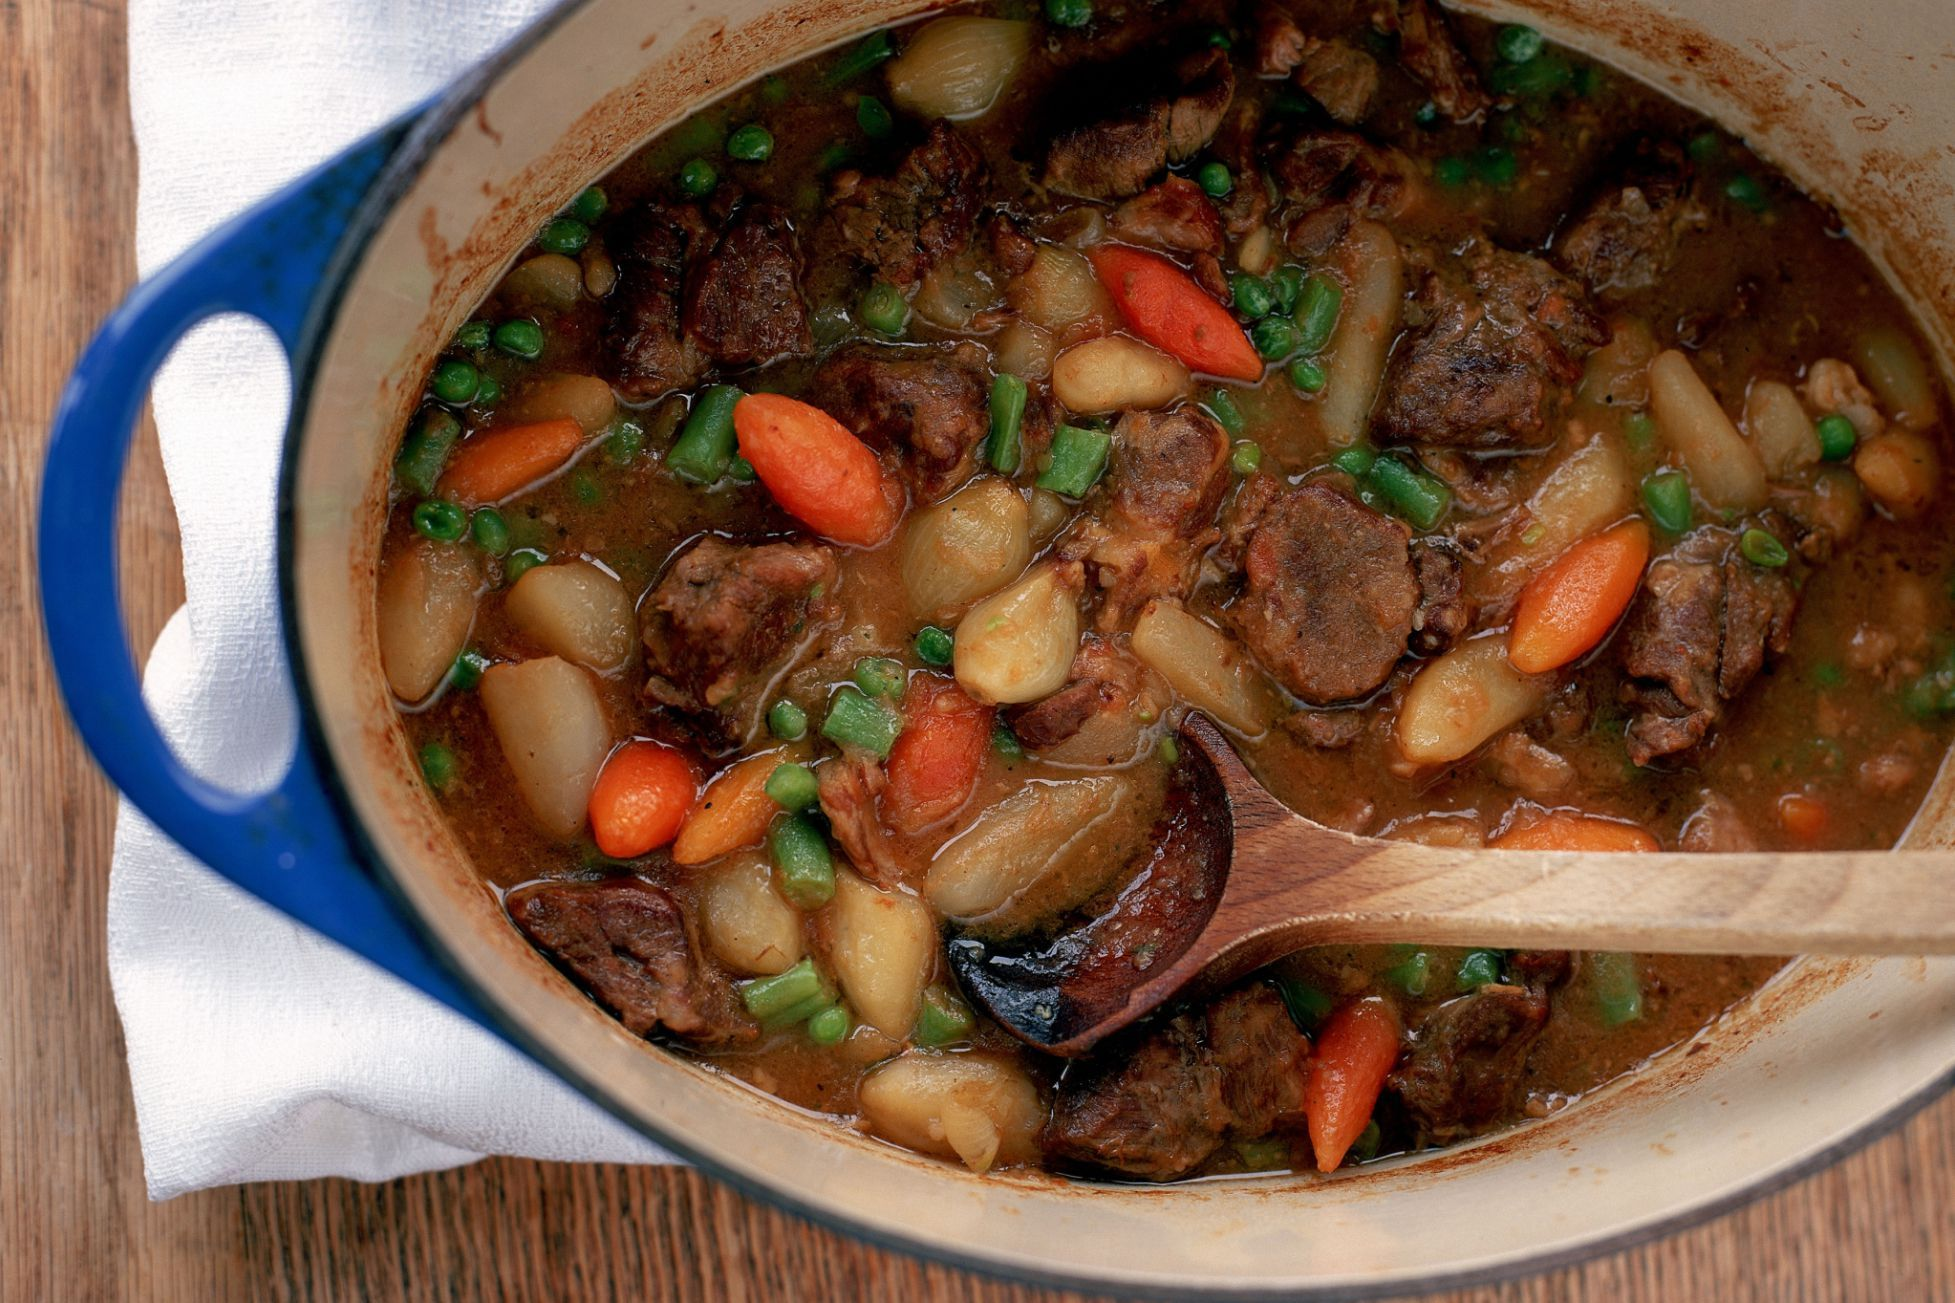 Hearty Stove Top Beef Stew With Vegetables Recipe Beef Stew Recipe Stew Recipes Oven Braised Beef Stew